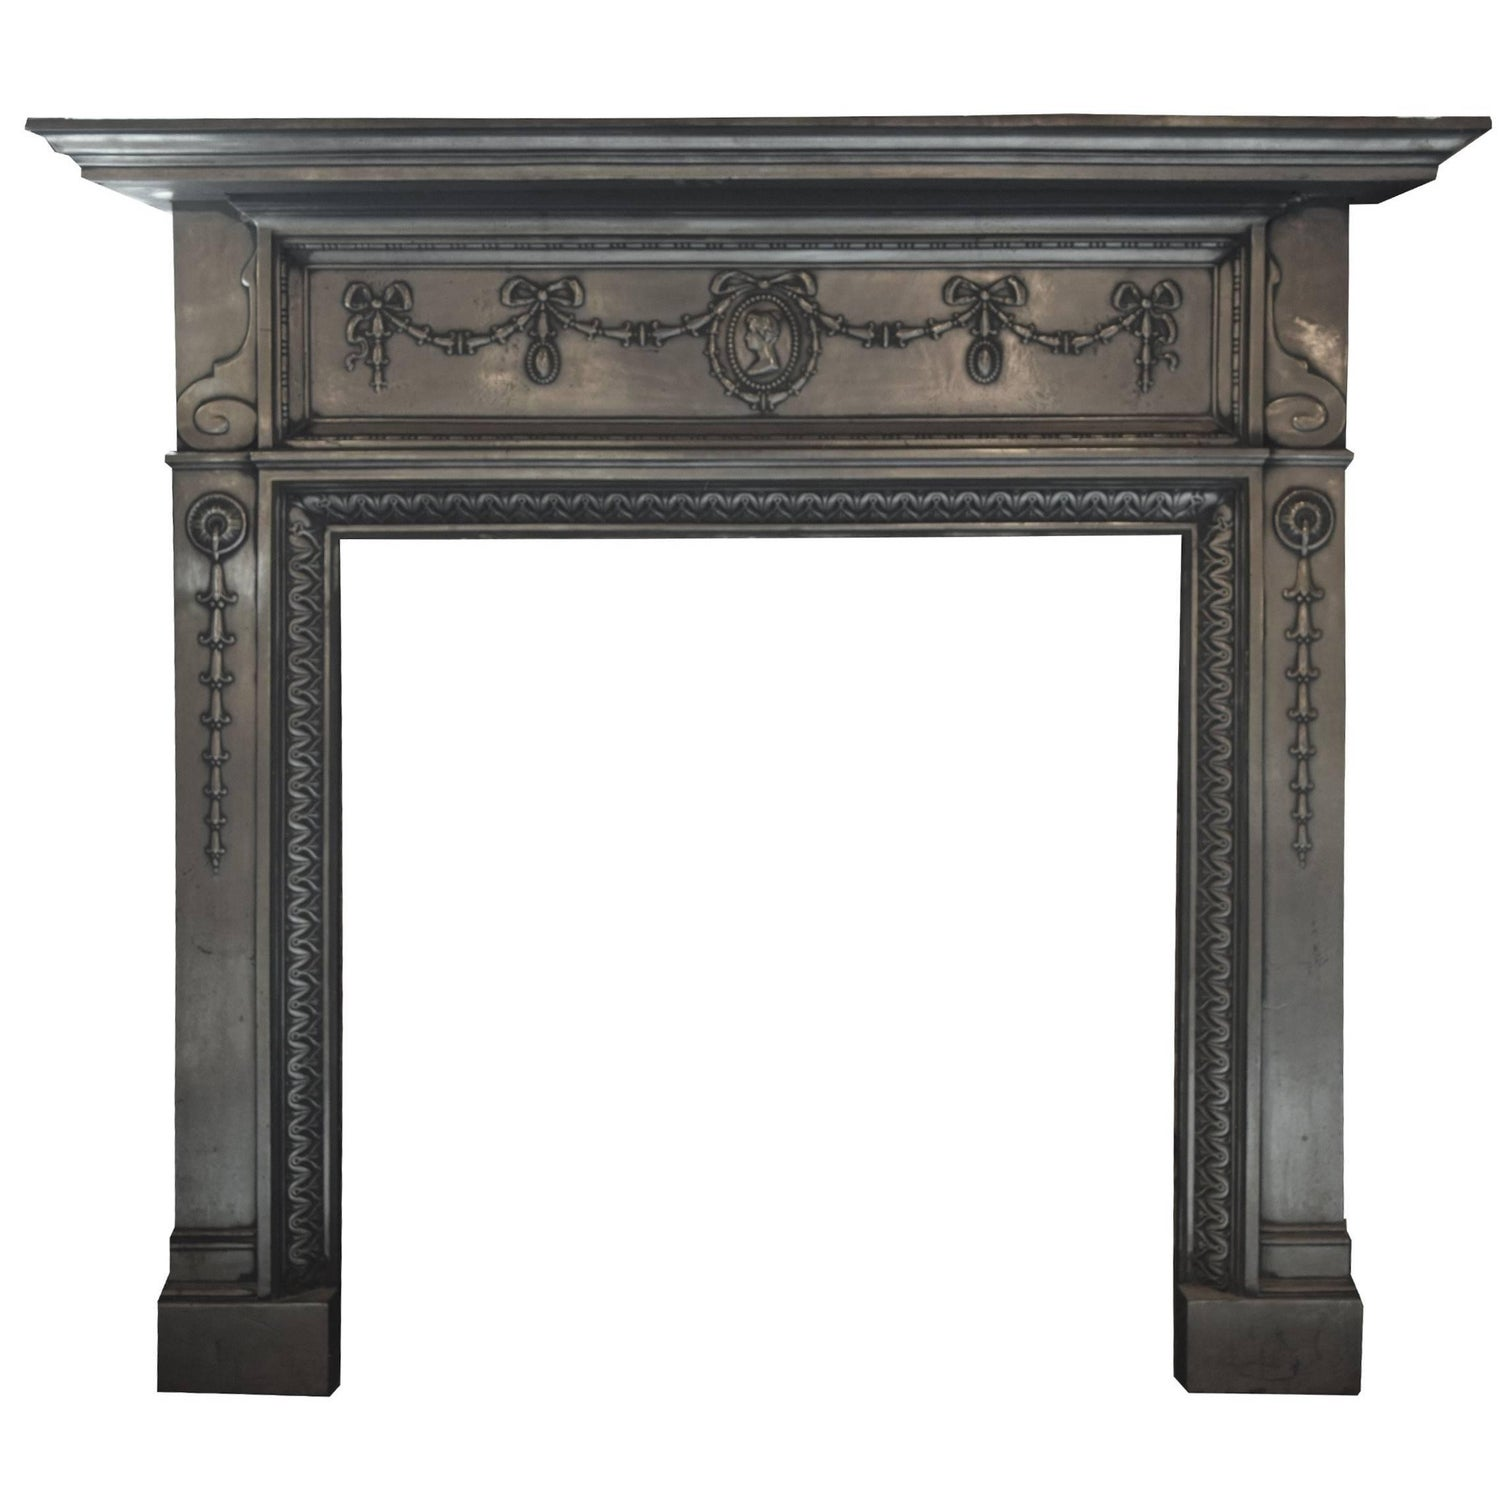 antique u0026 vintage fireplaces and mantels for sale in chicago near me